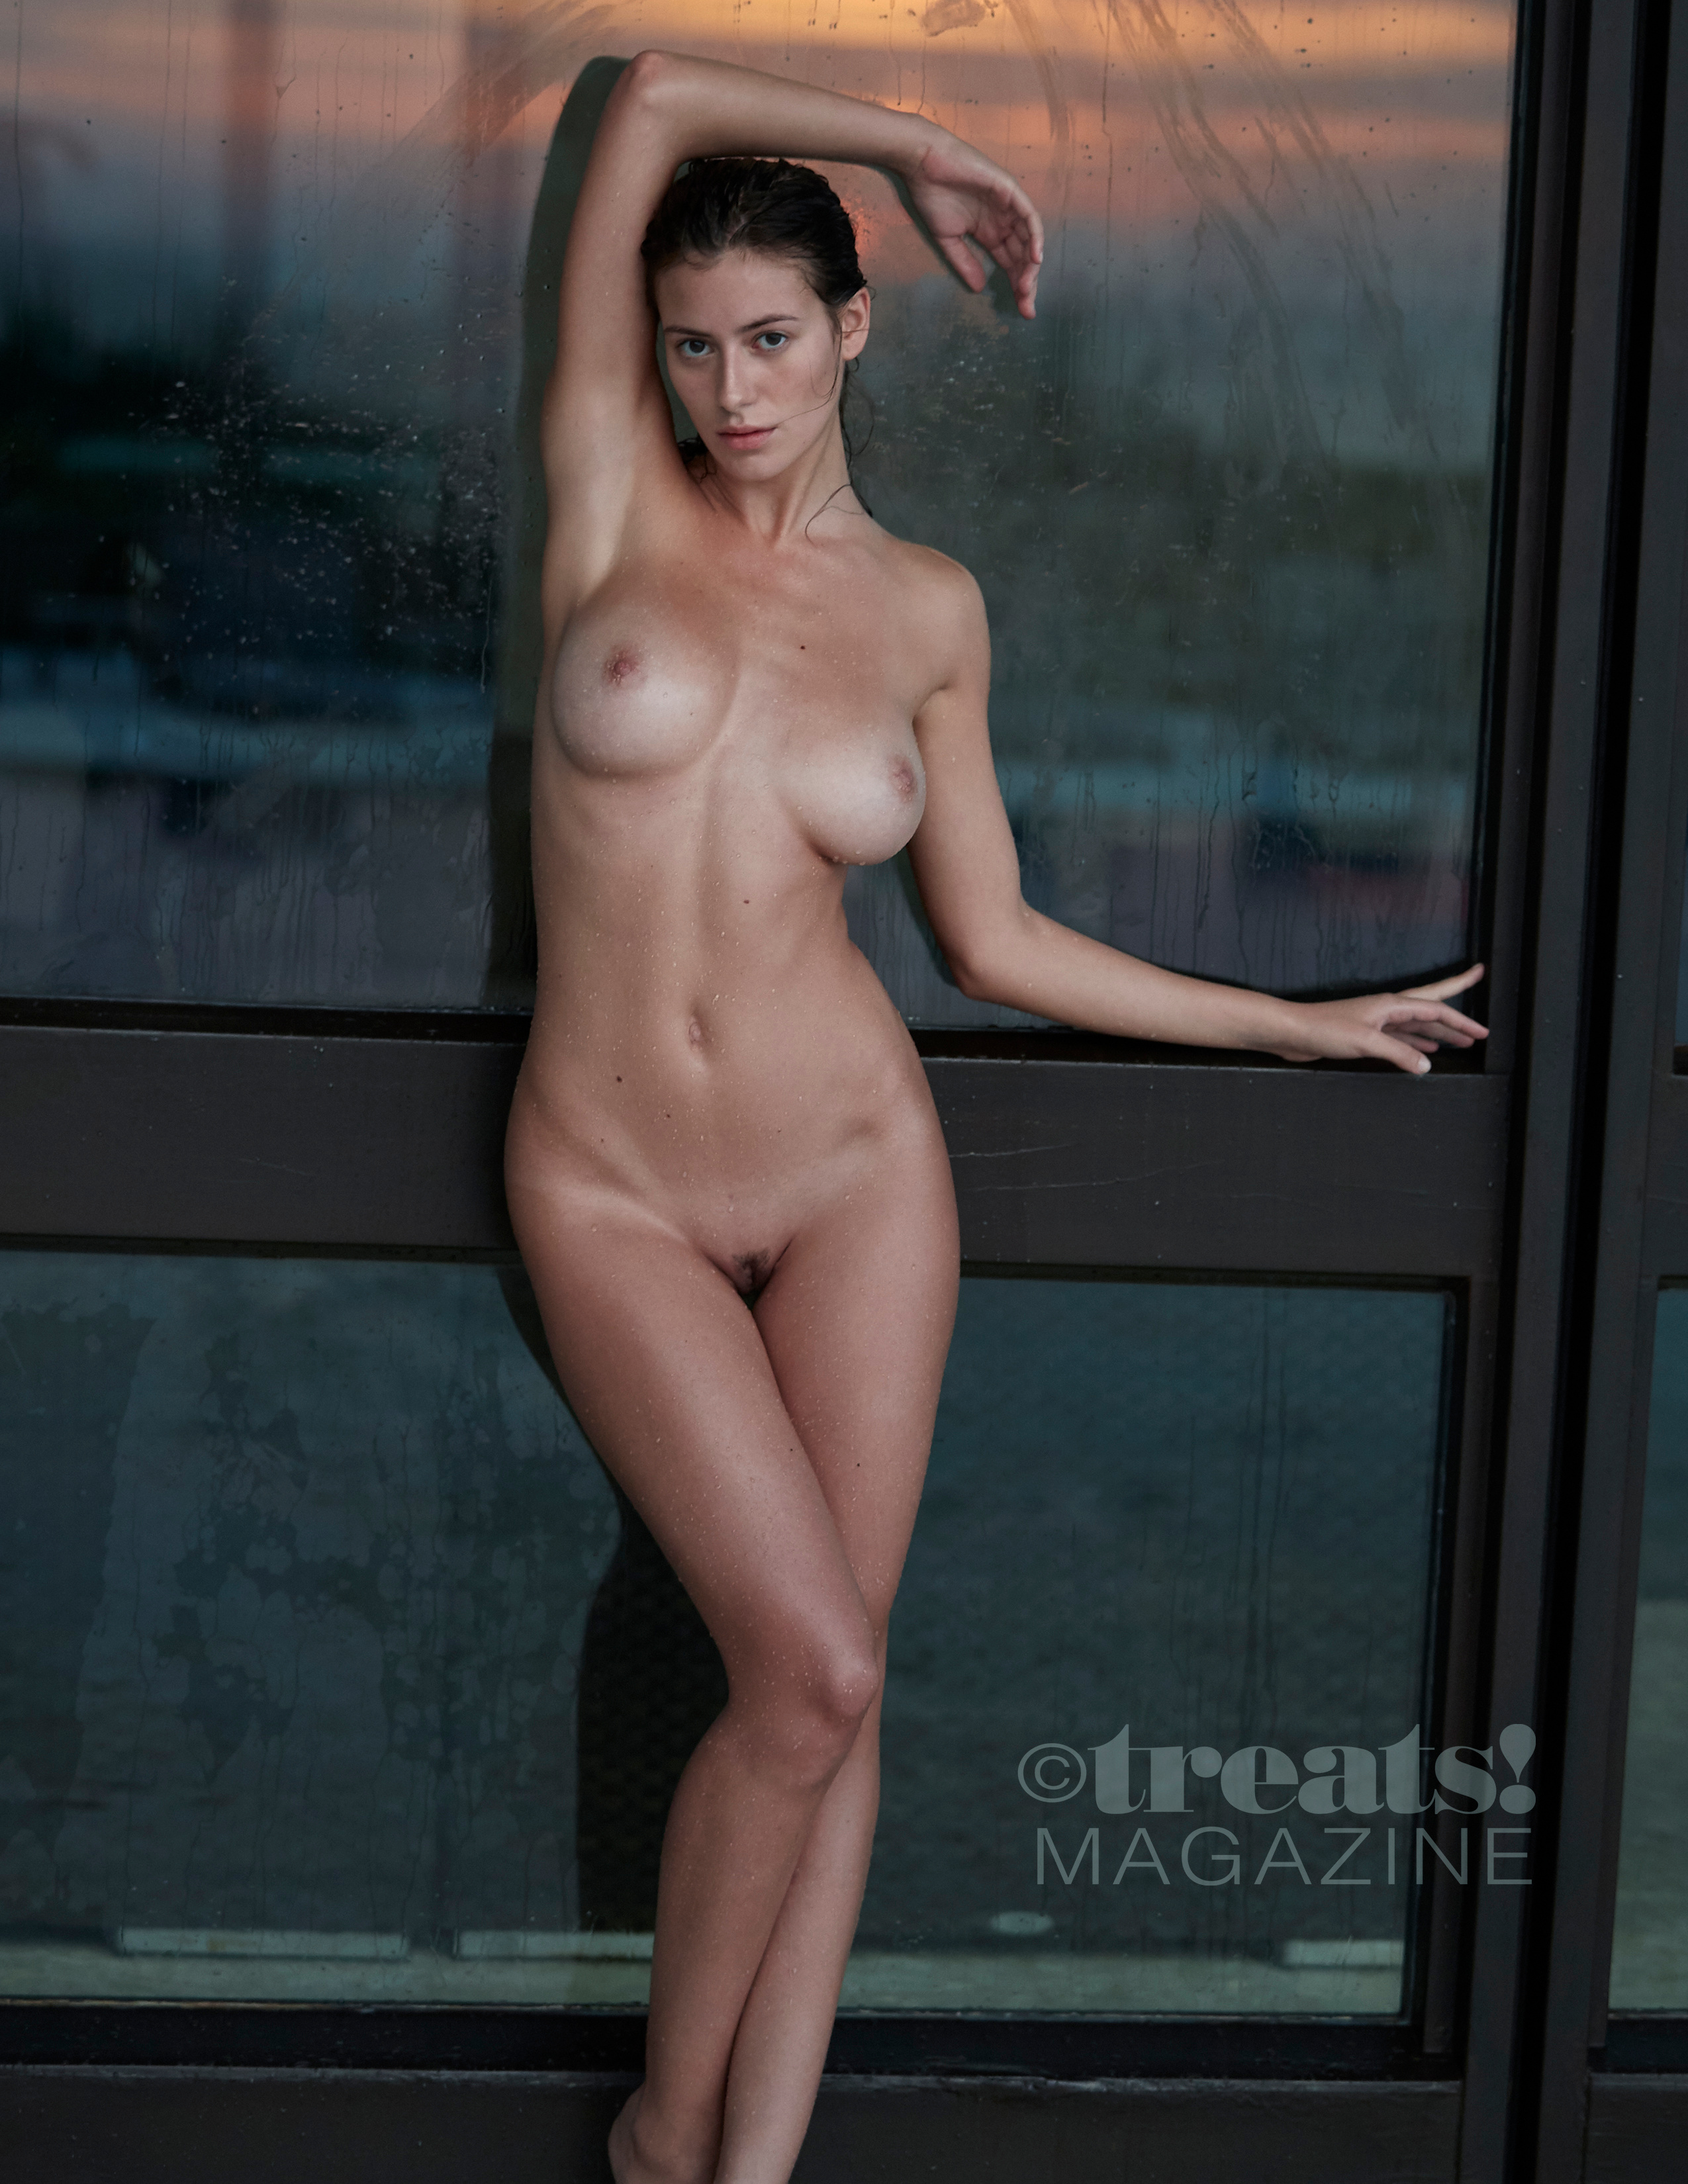 alejandra-guilmant-perfect-nude-body-erotic-treats-magazine-by-david-bellemere-28